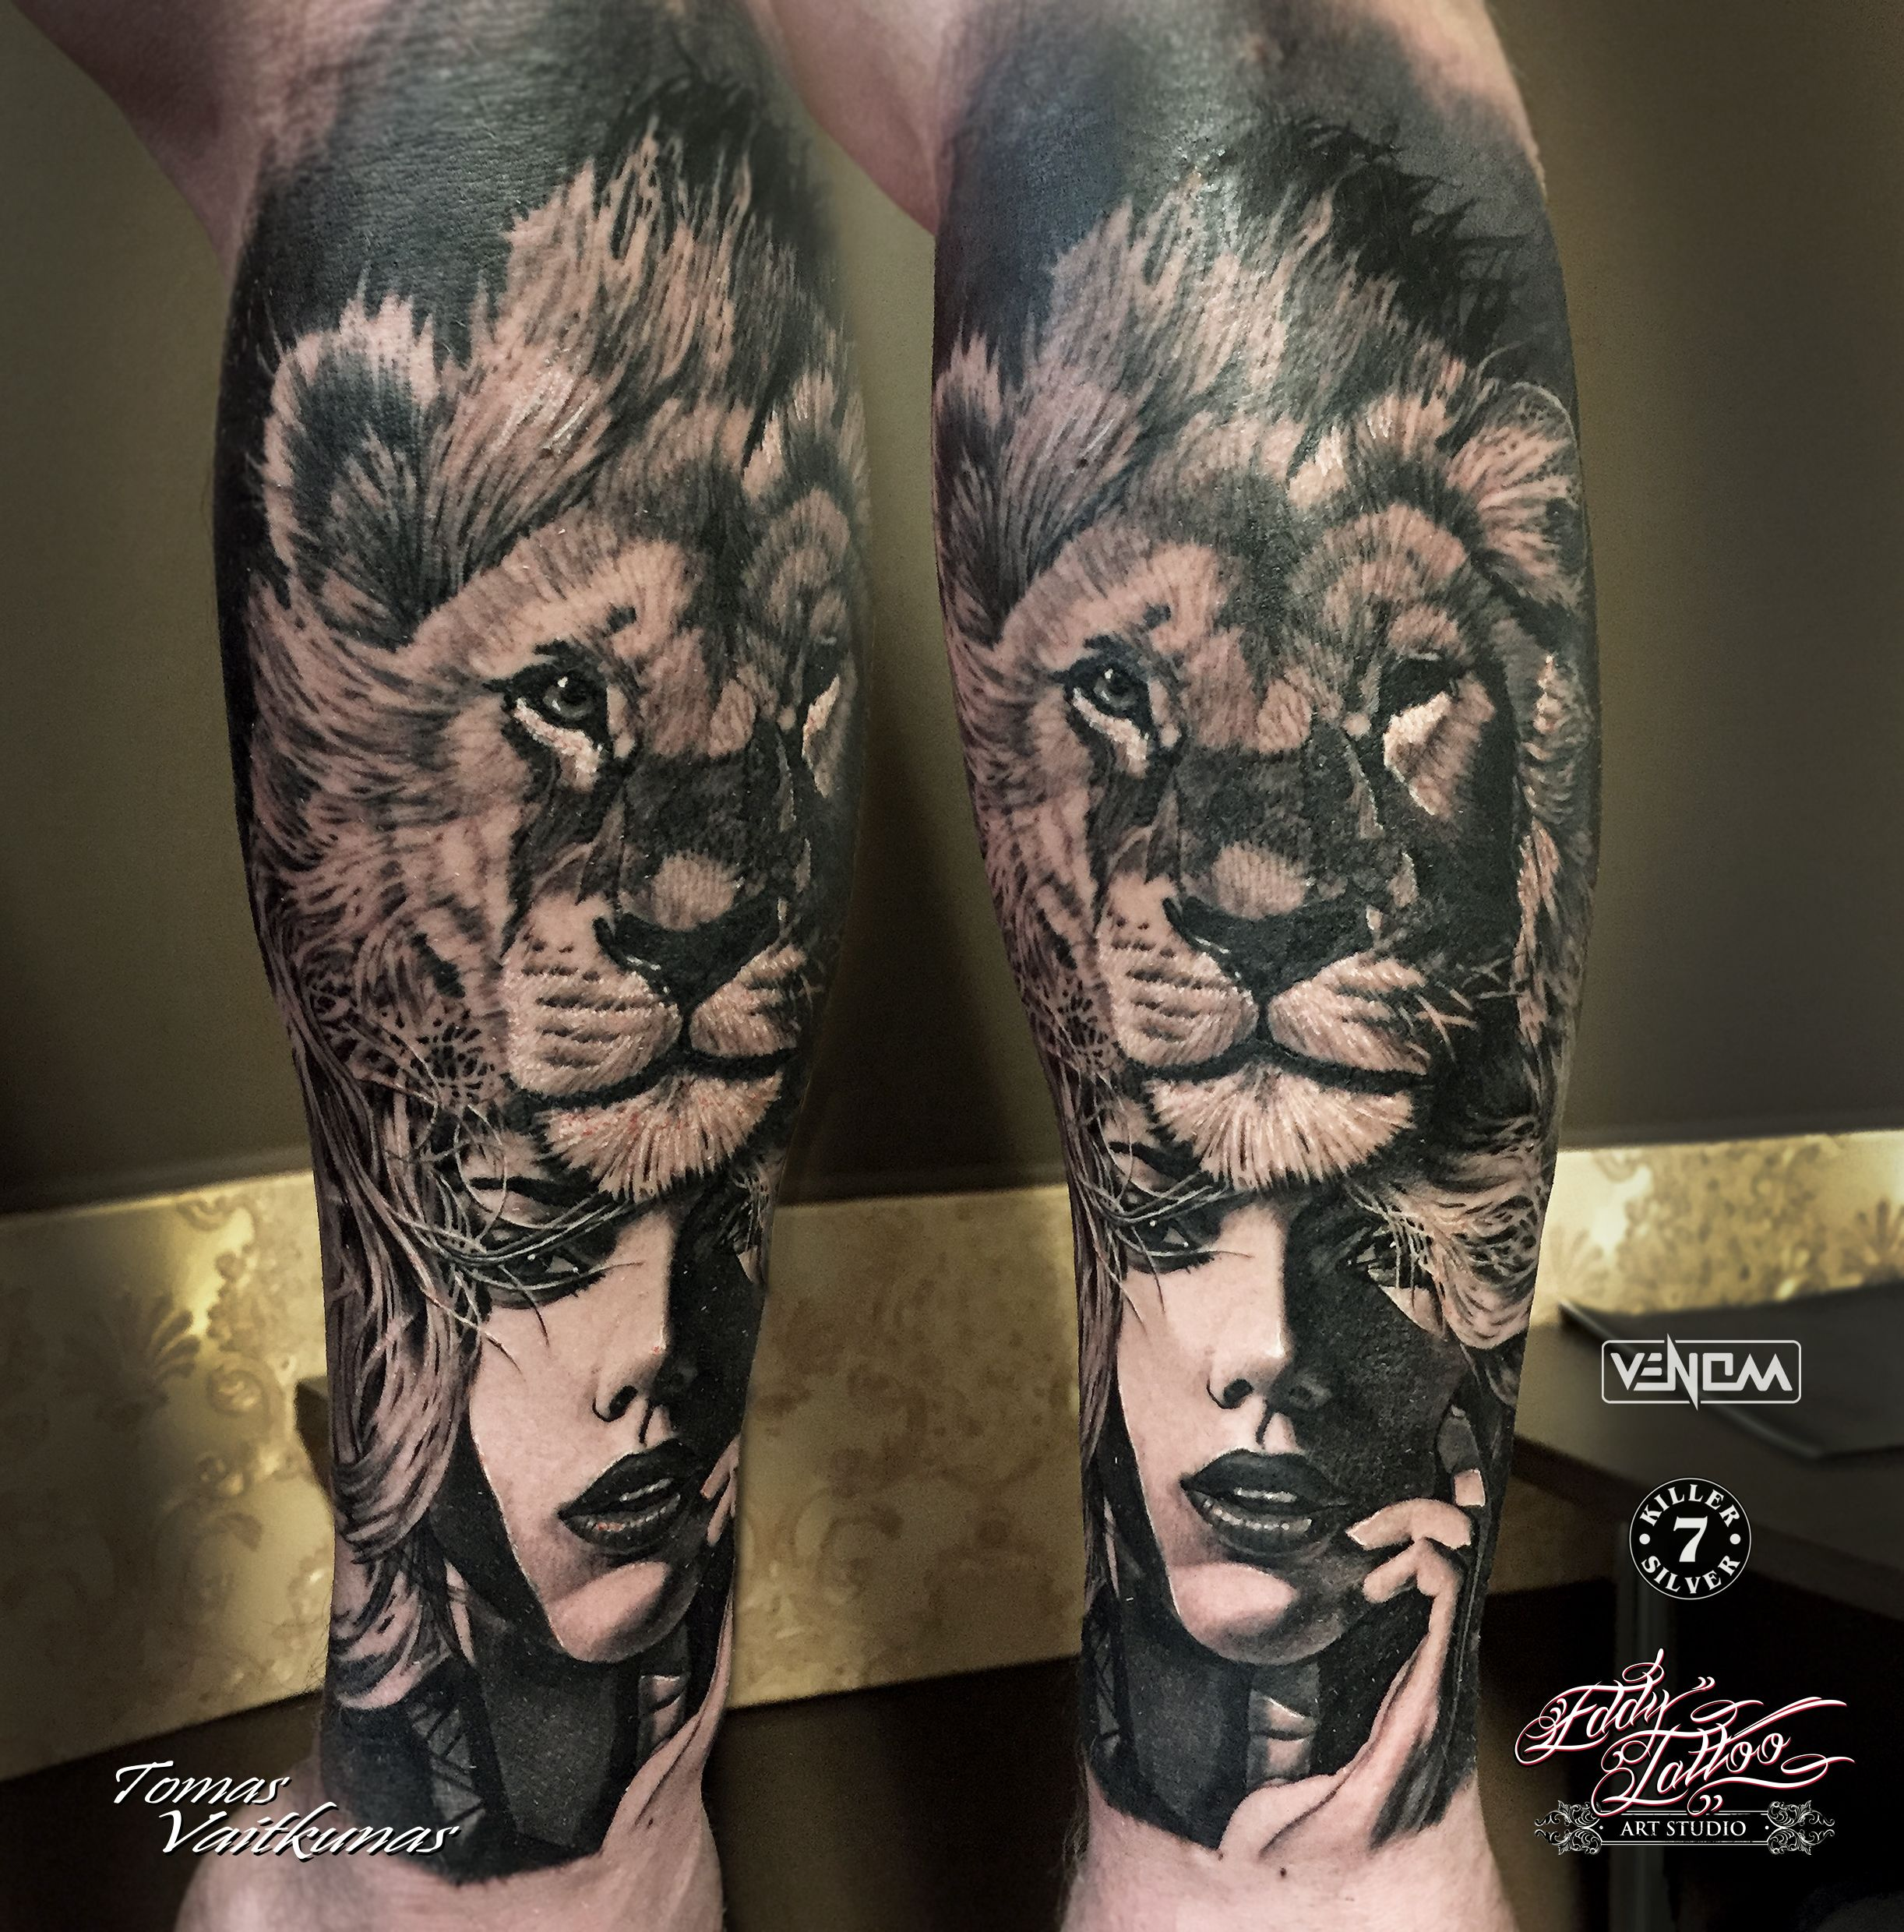 150 realistic lion tattoos and meanings 2017 collection -  Lion Girl Tattoo Www Tomasvaitkunas Com